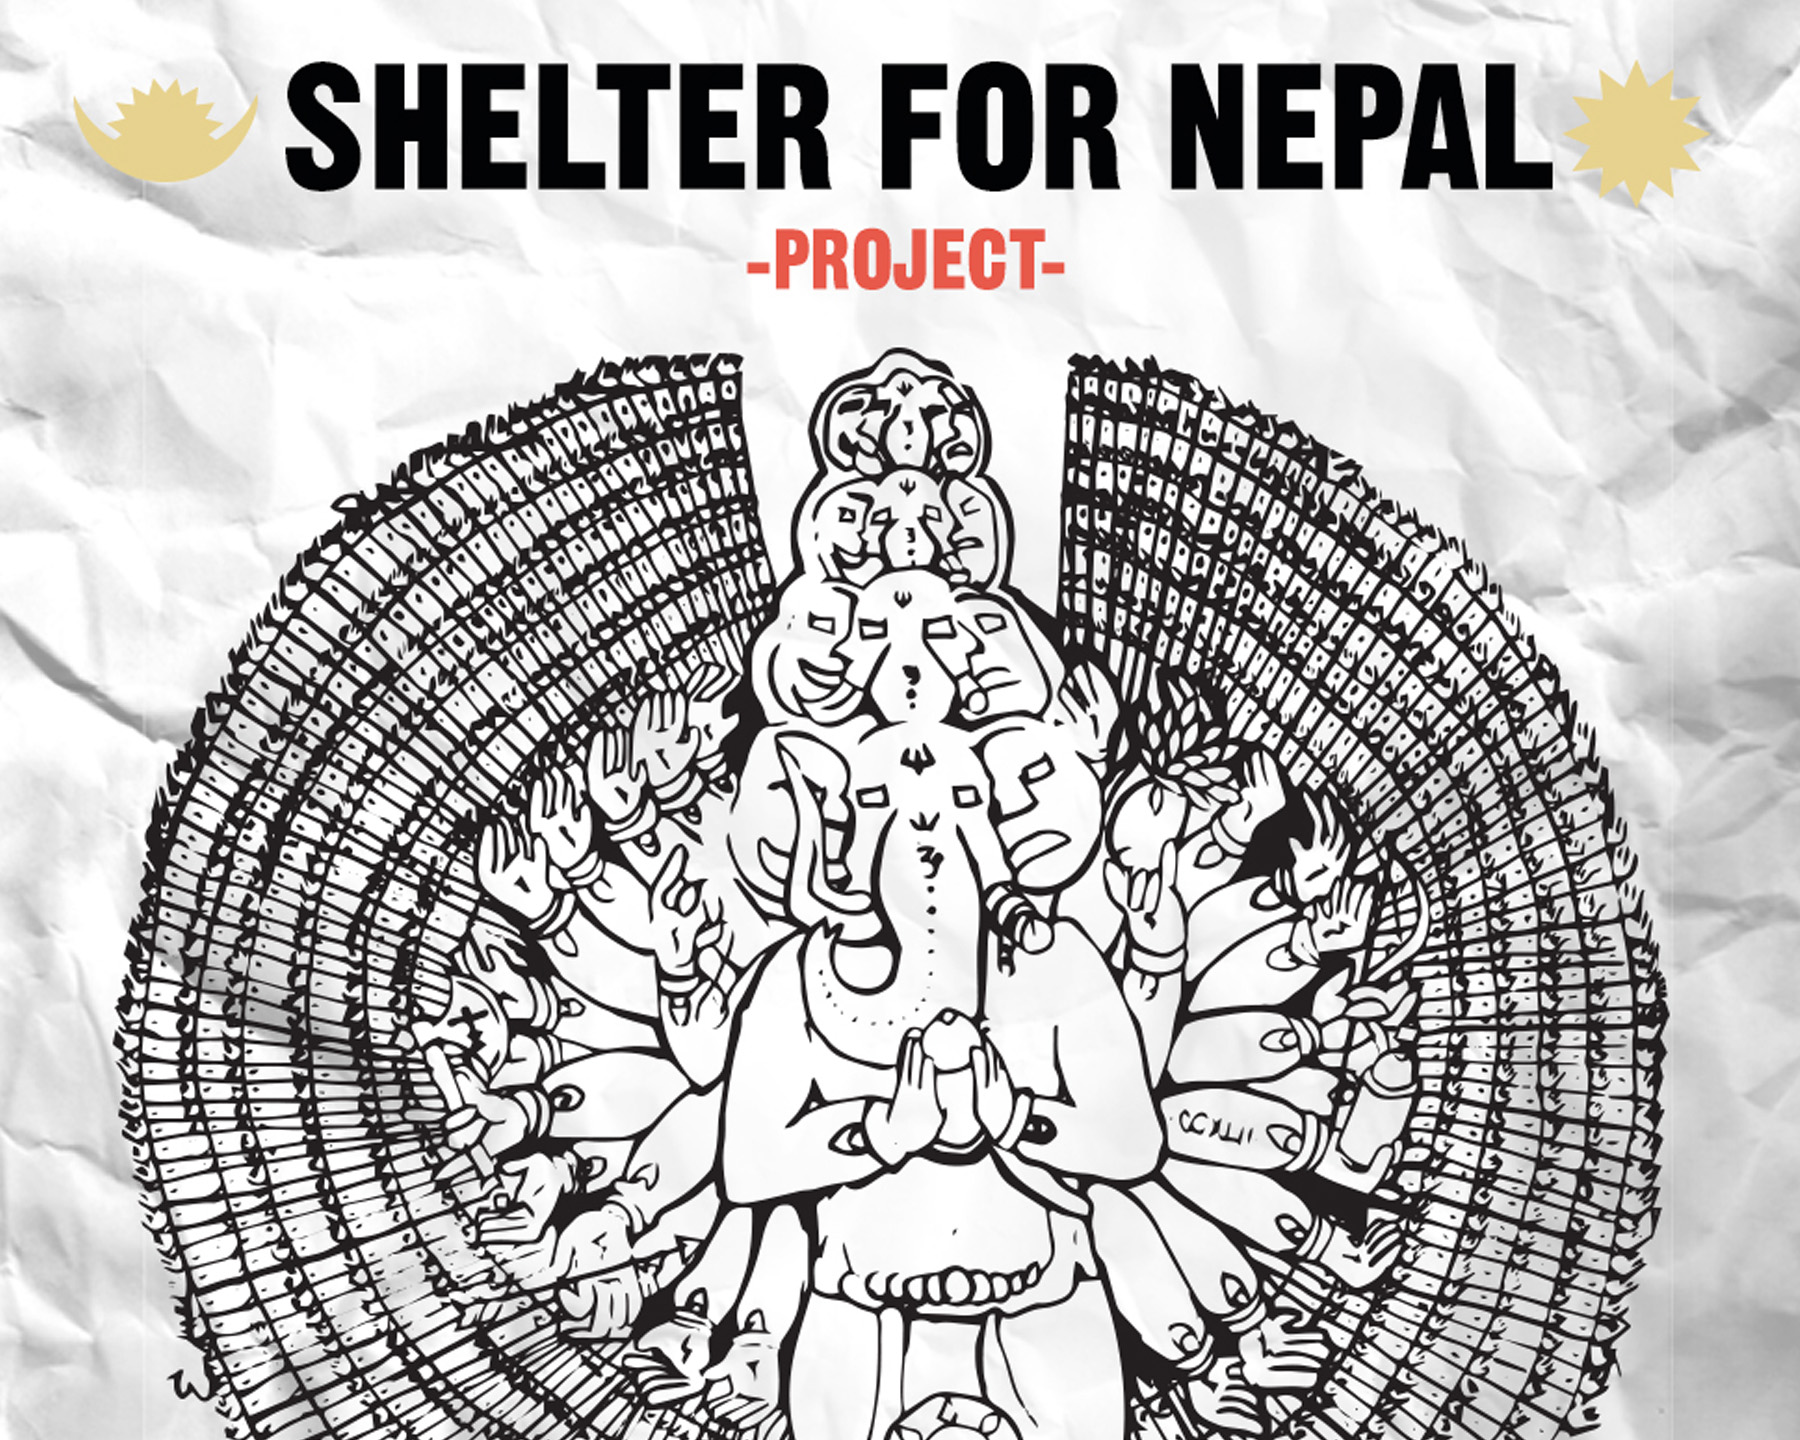 featured shelter for nepal project